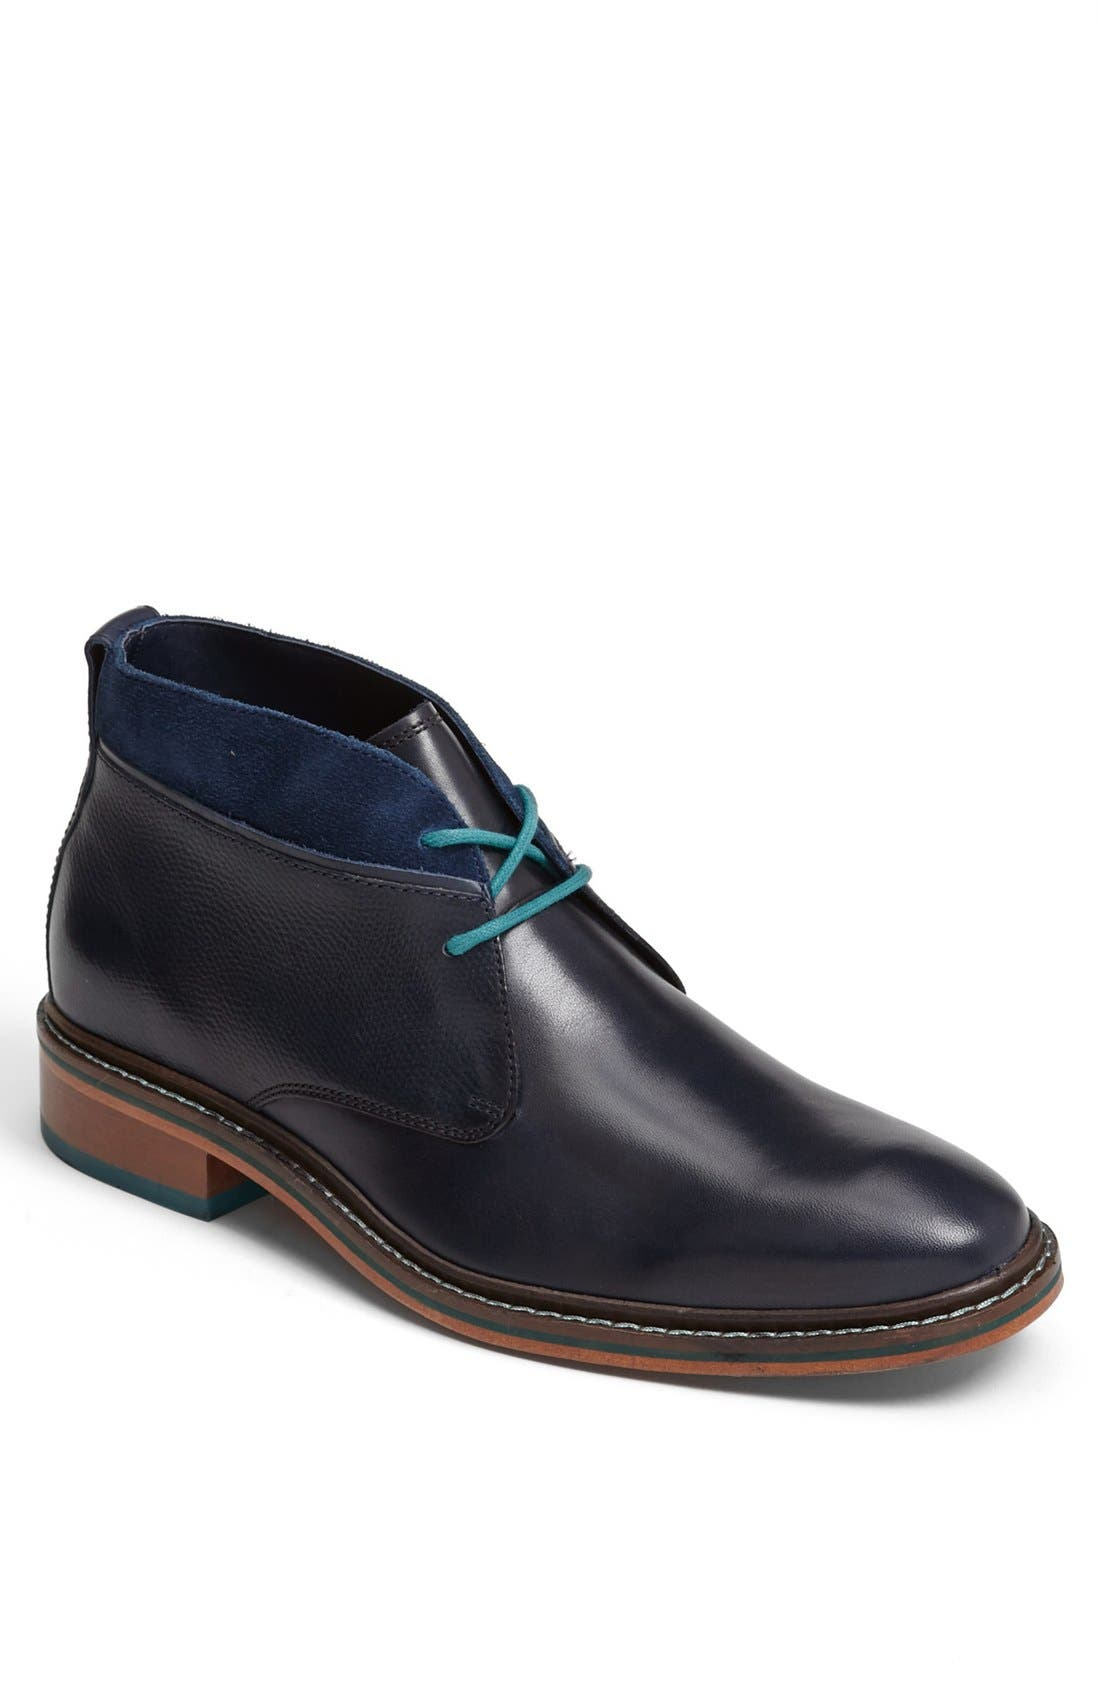 Alternate Image 1 Selected - Cole Haan 'Colton' Chukka Boot (Men)